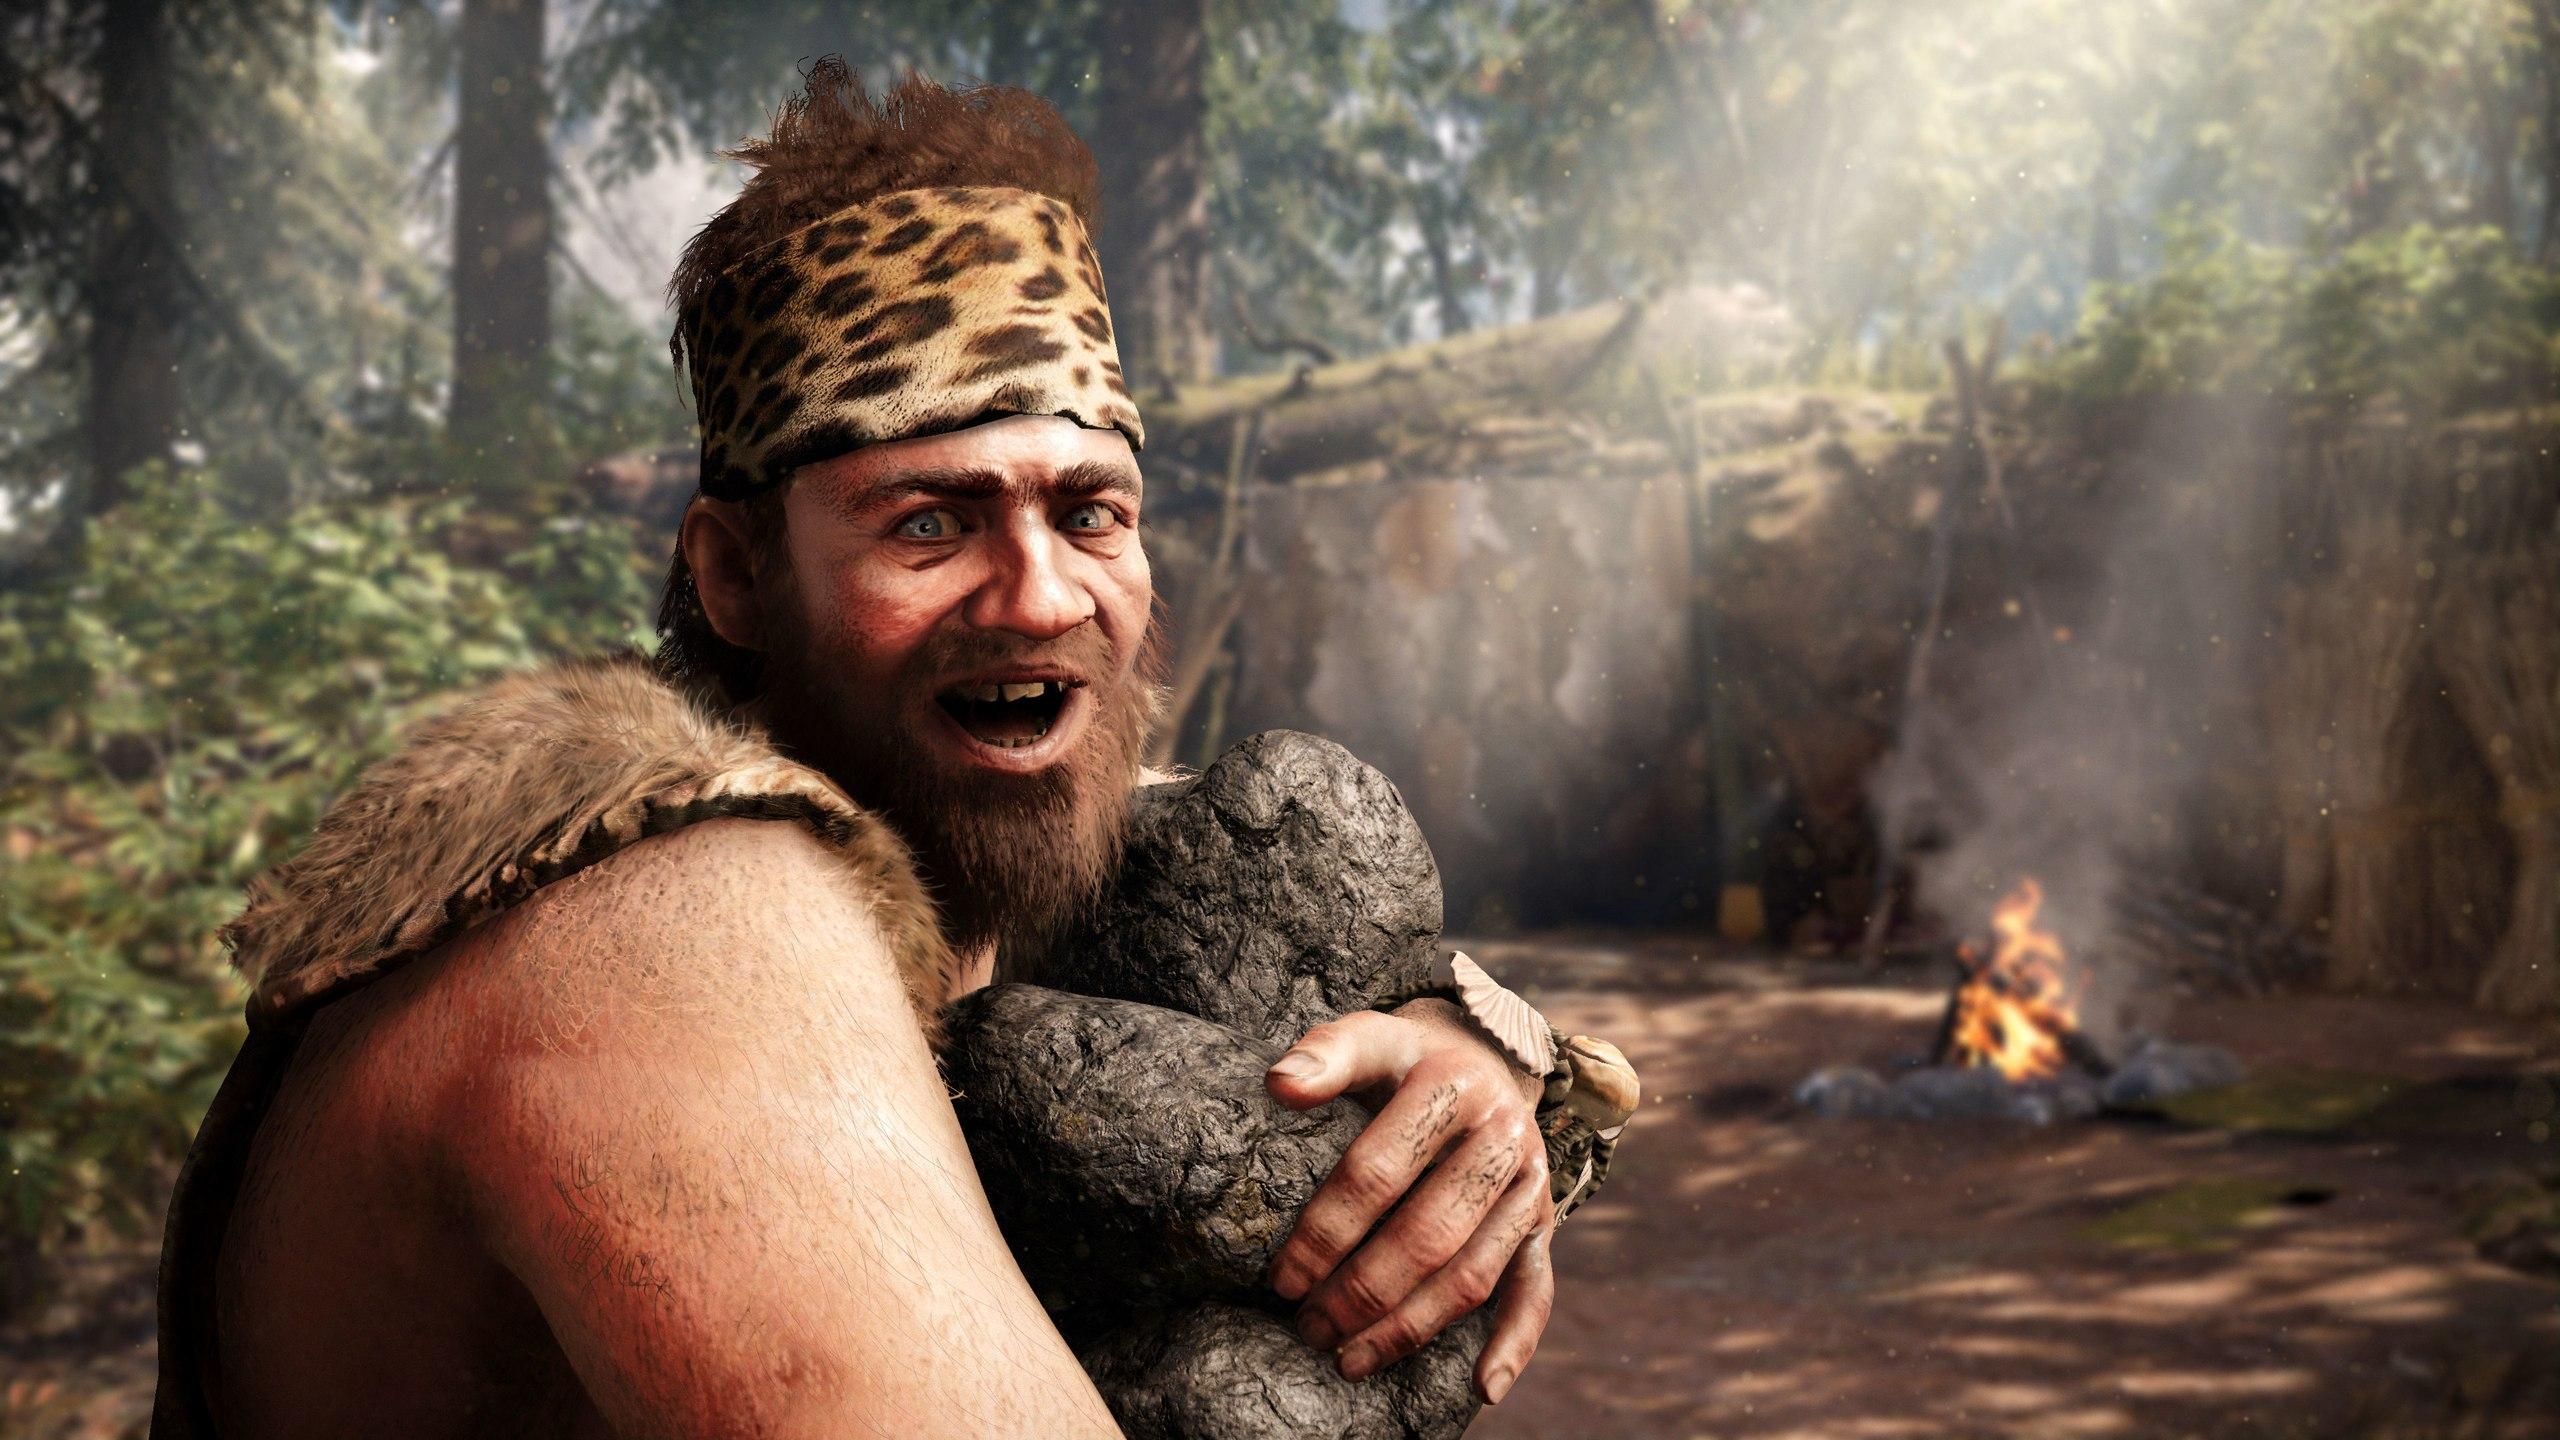 http://far-cry.cz/wp-content/uploads/ngg_featured/Far-Cry-Primal-Urki.jpg